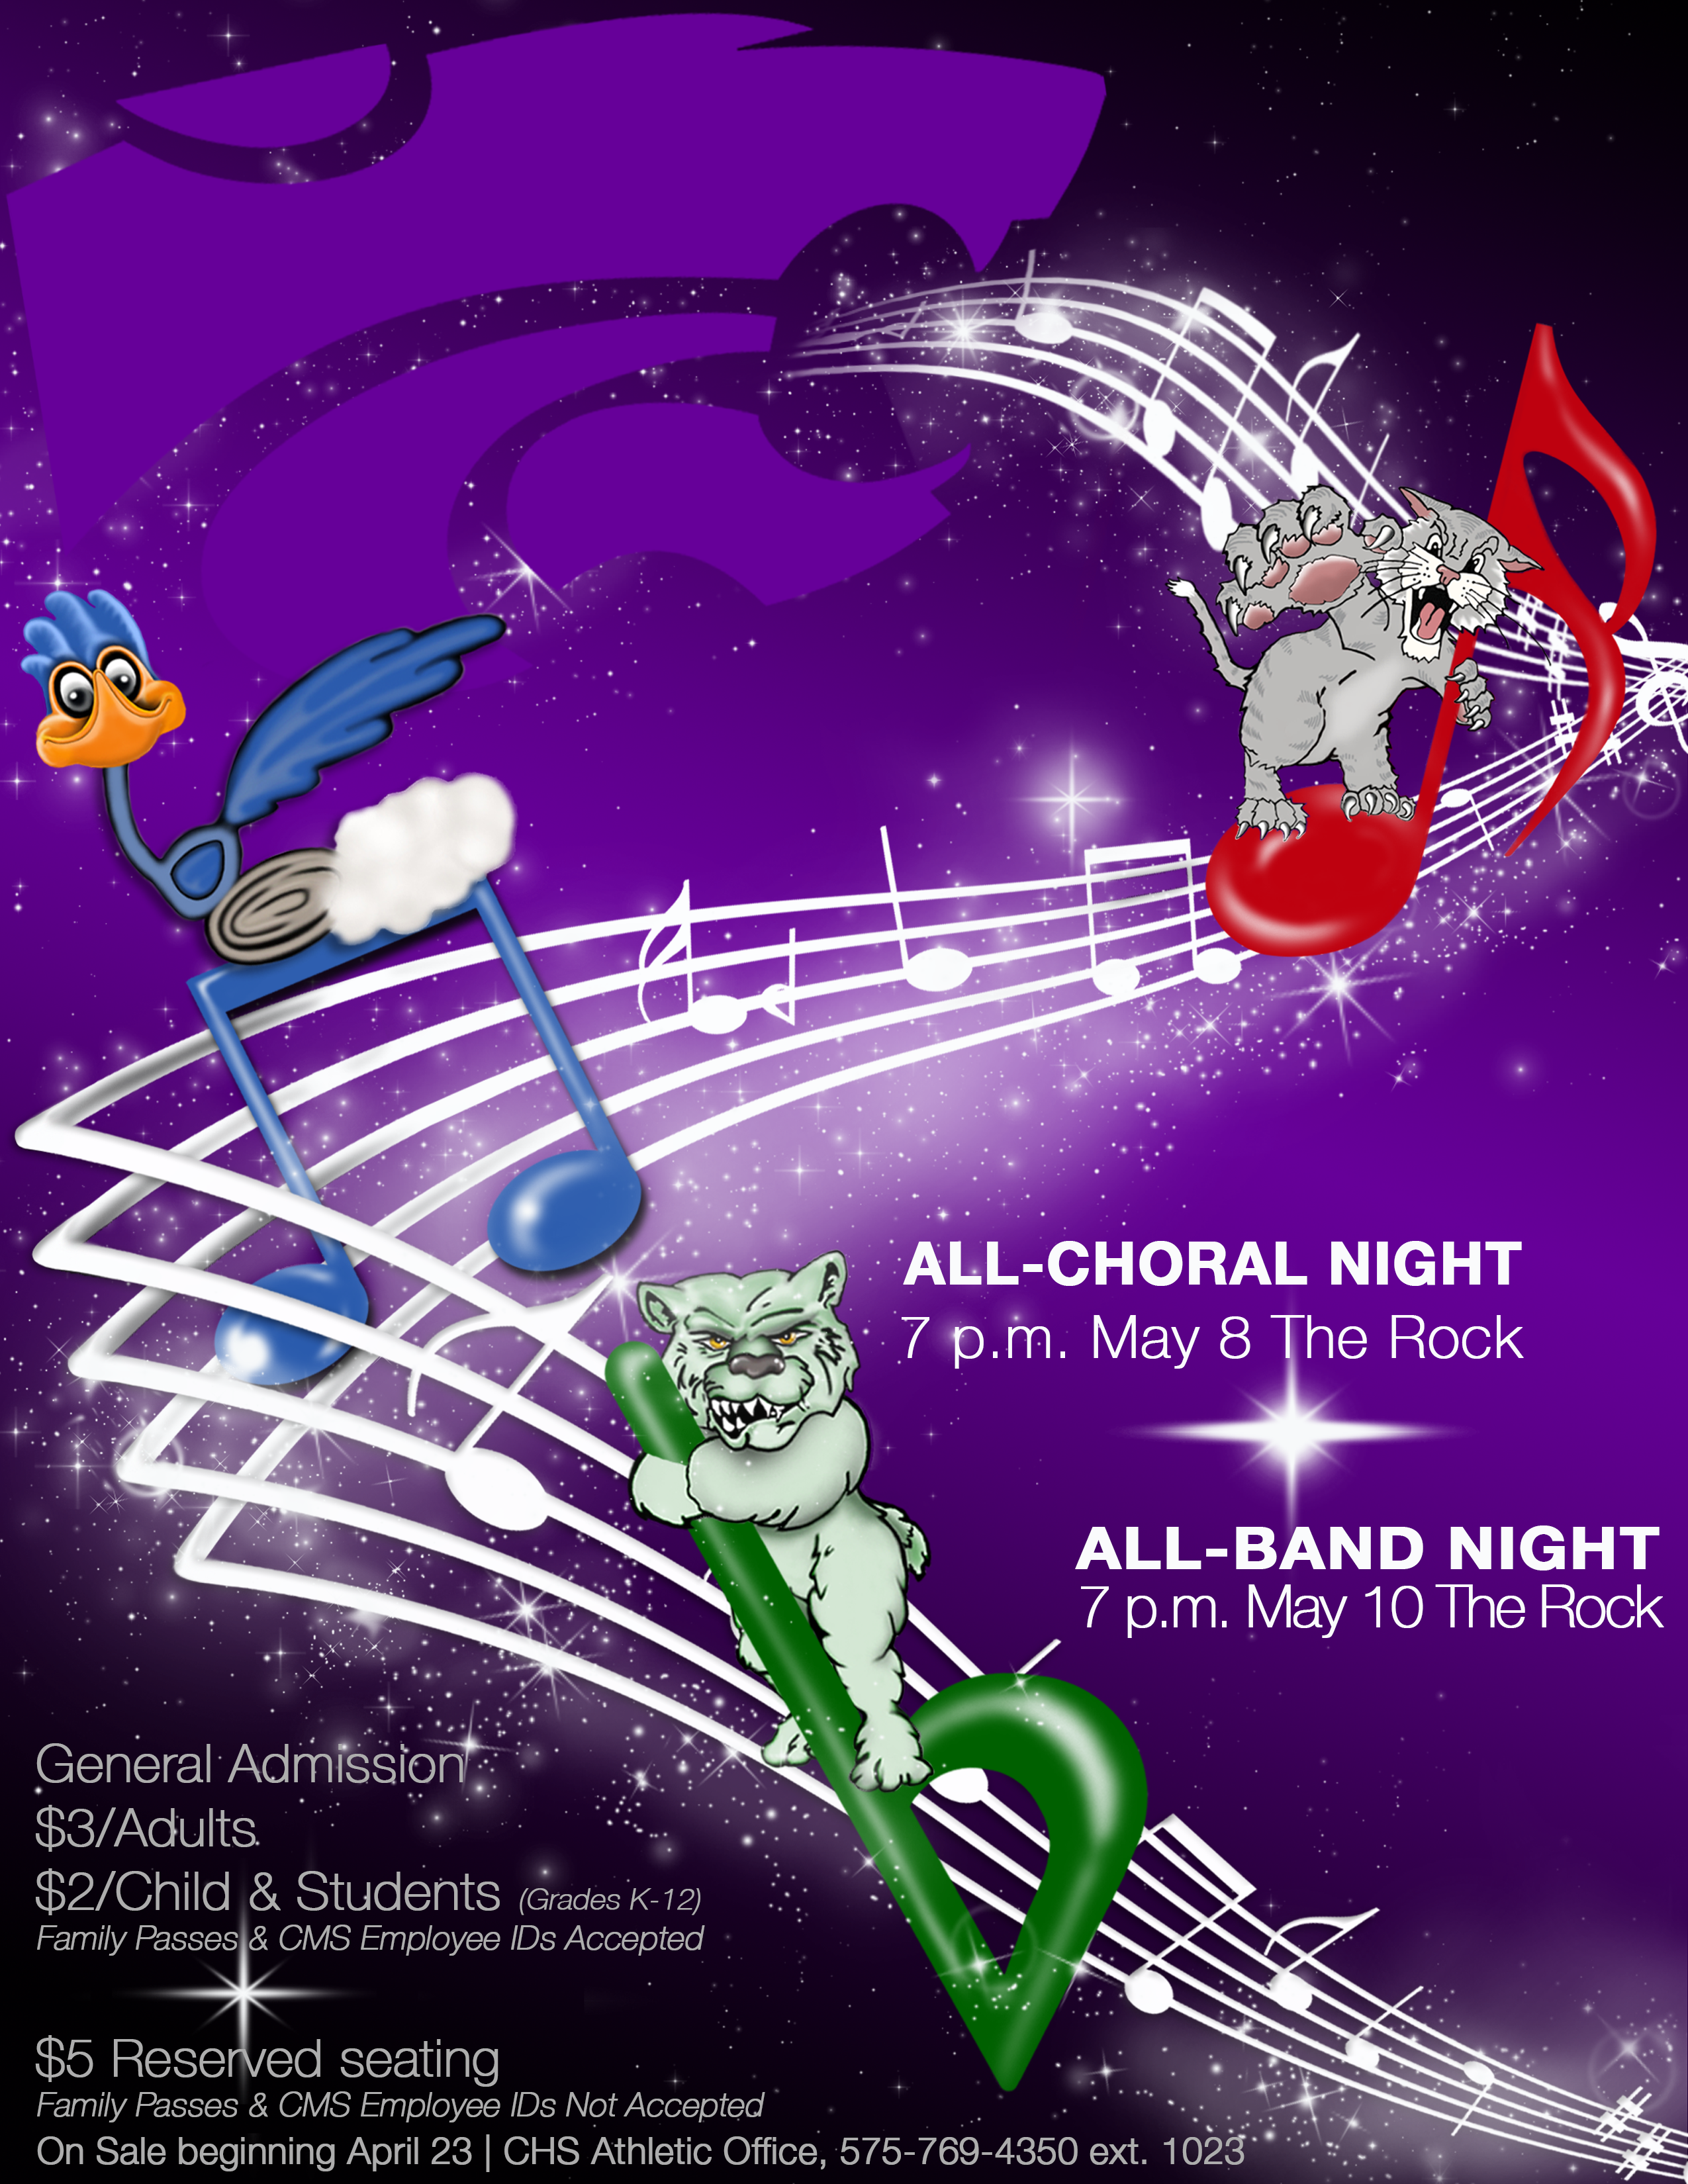 Image with text announcing All-band and All-choral nights